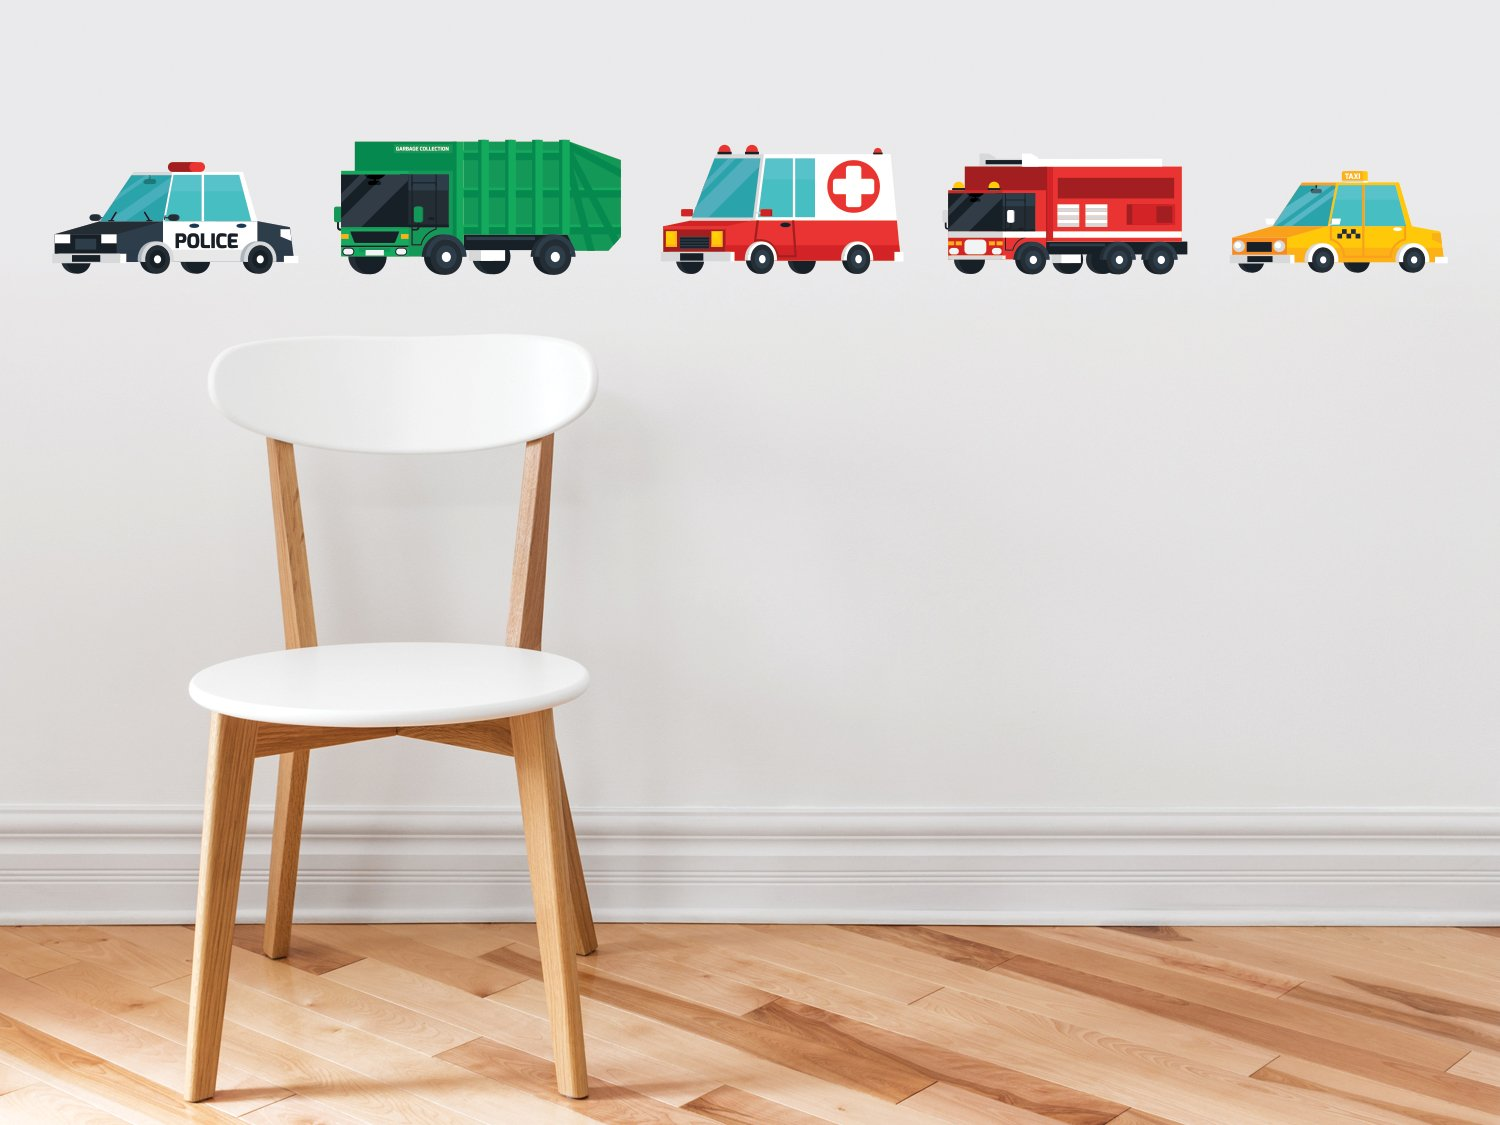 Transports Fabric Wall Decal, Set of 5 Emergency Rescue Vehicles and City Trucks, Transportation Wall Decor with Police Car, Garbage Truck, Ambulance, Fire Truck, and Taxi, Non Toxic and Reusable